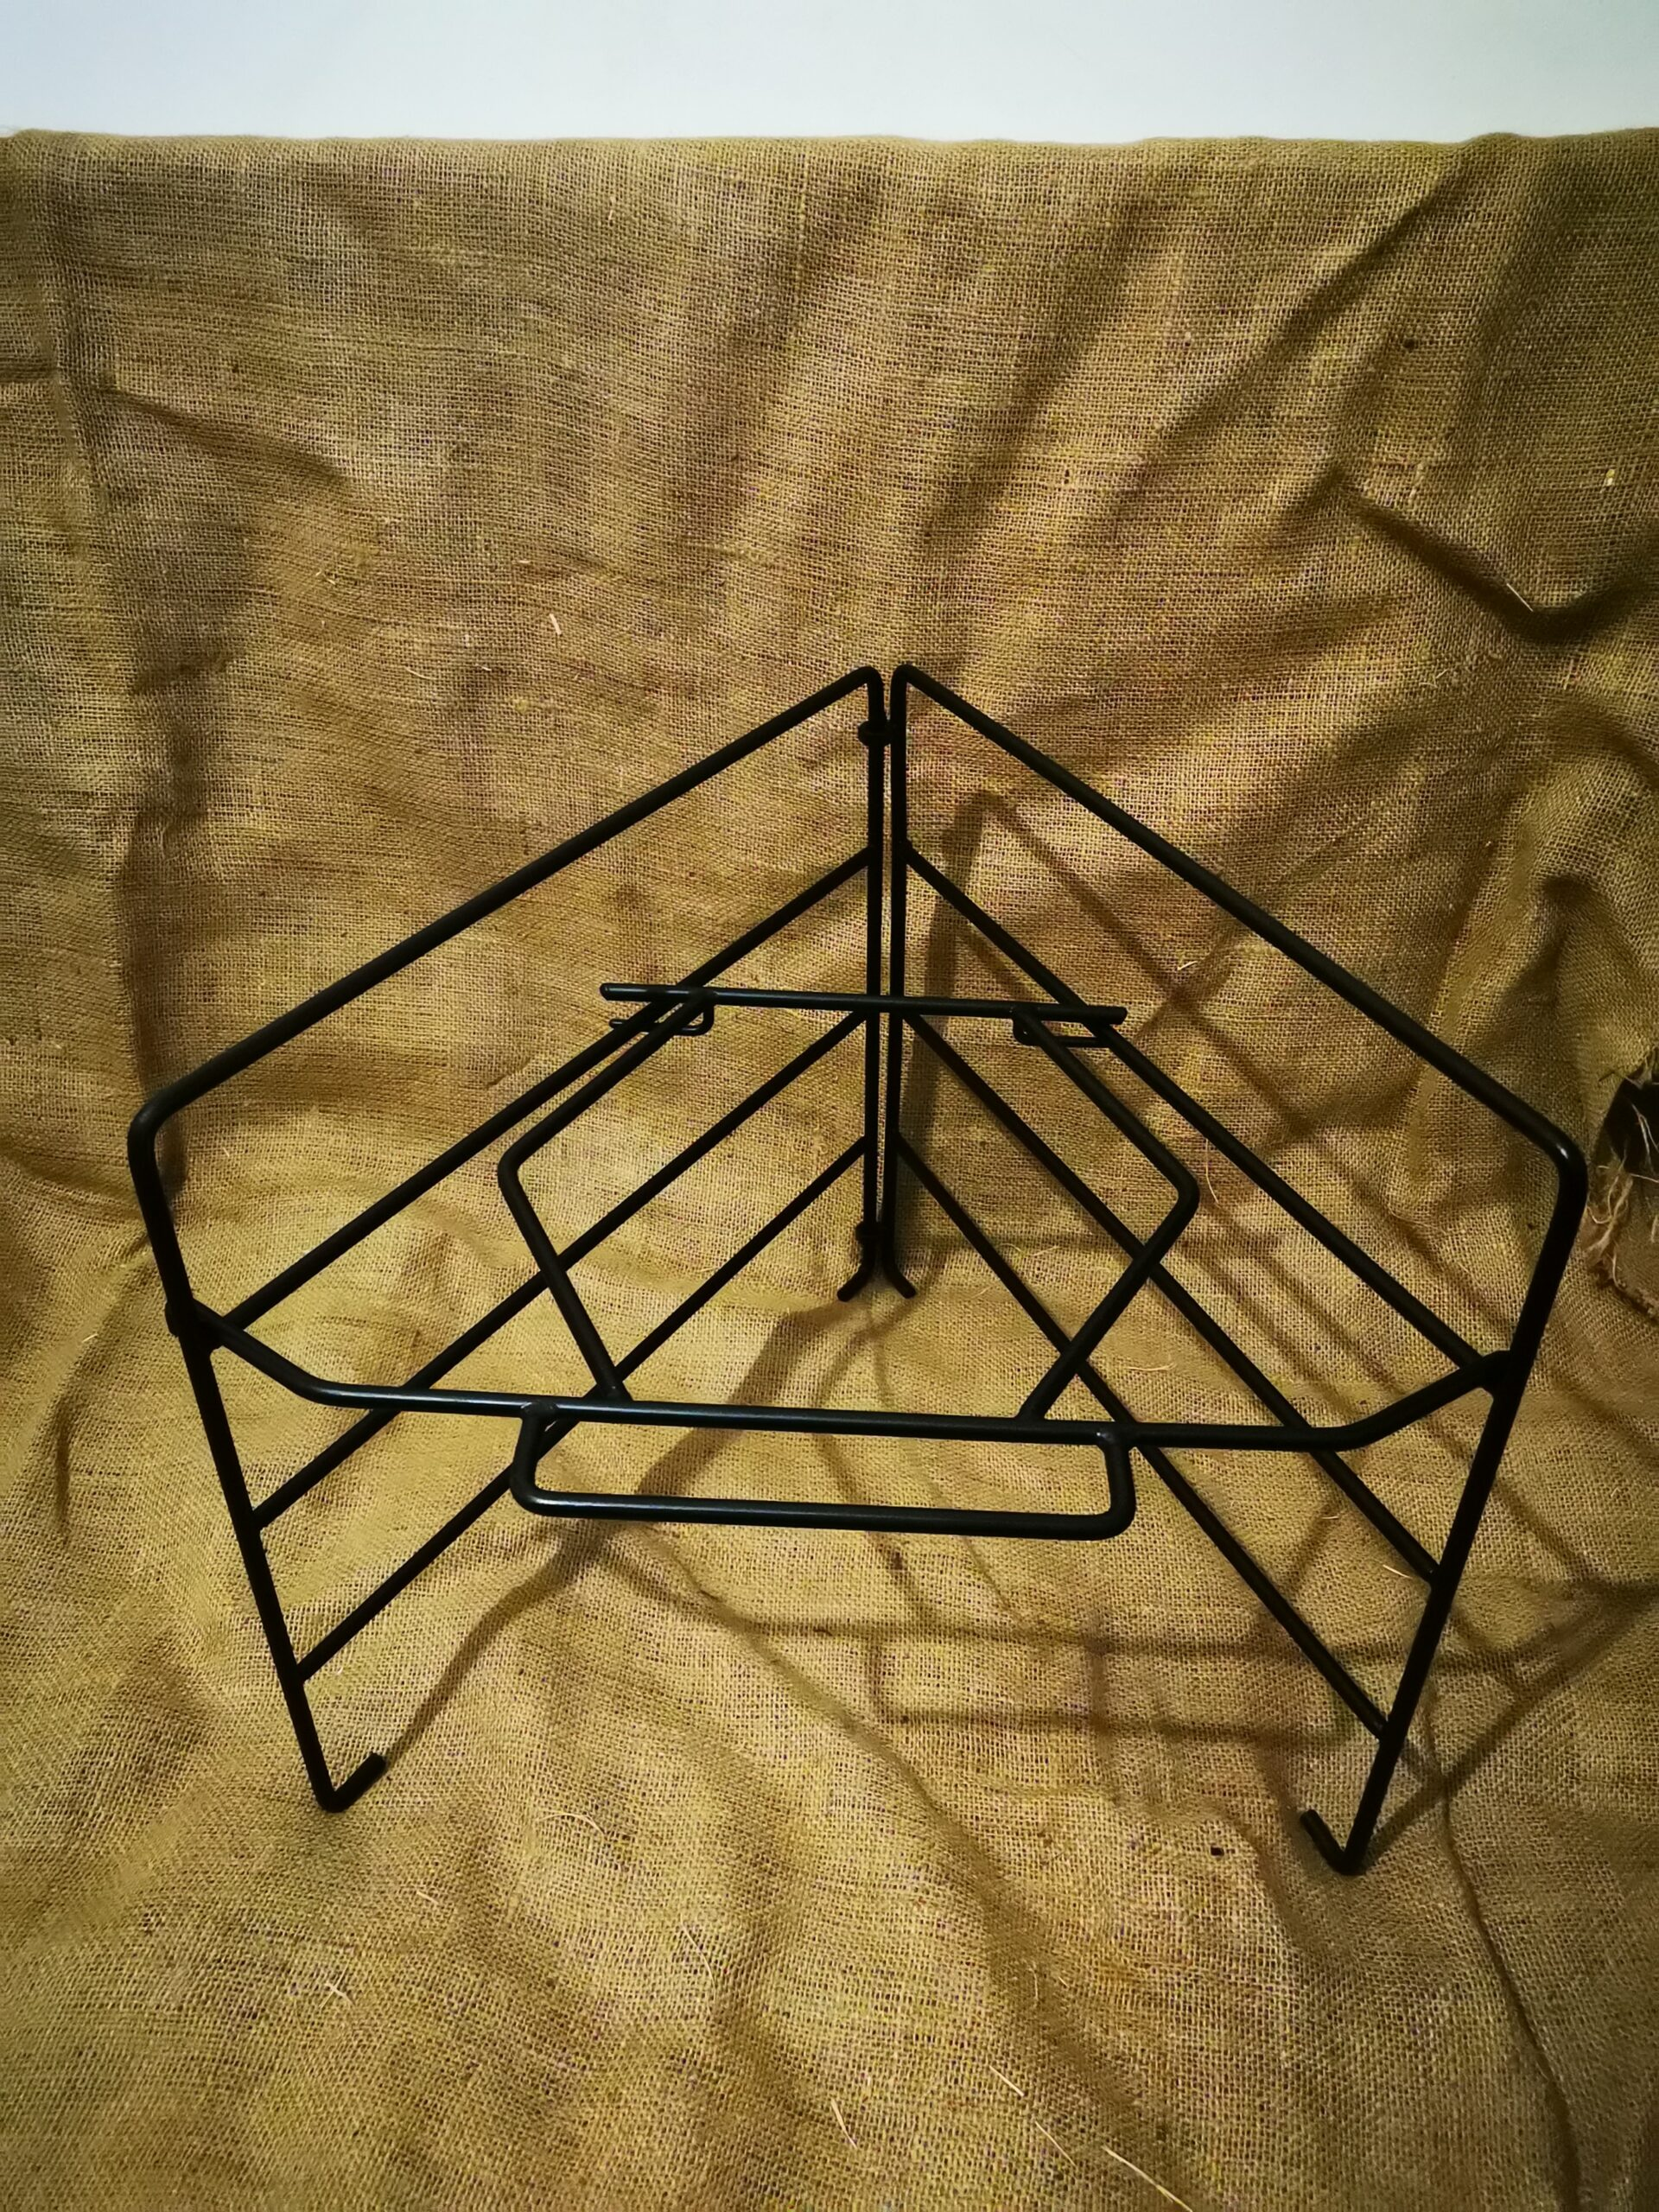 mild-steel-fold-up-stand3